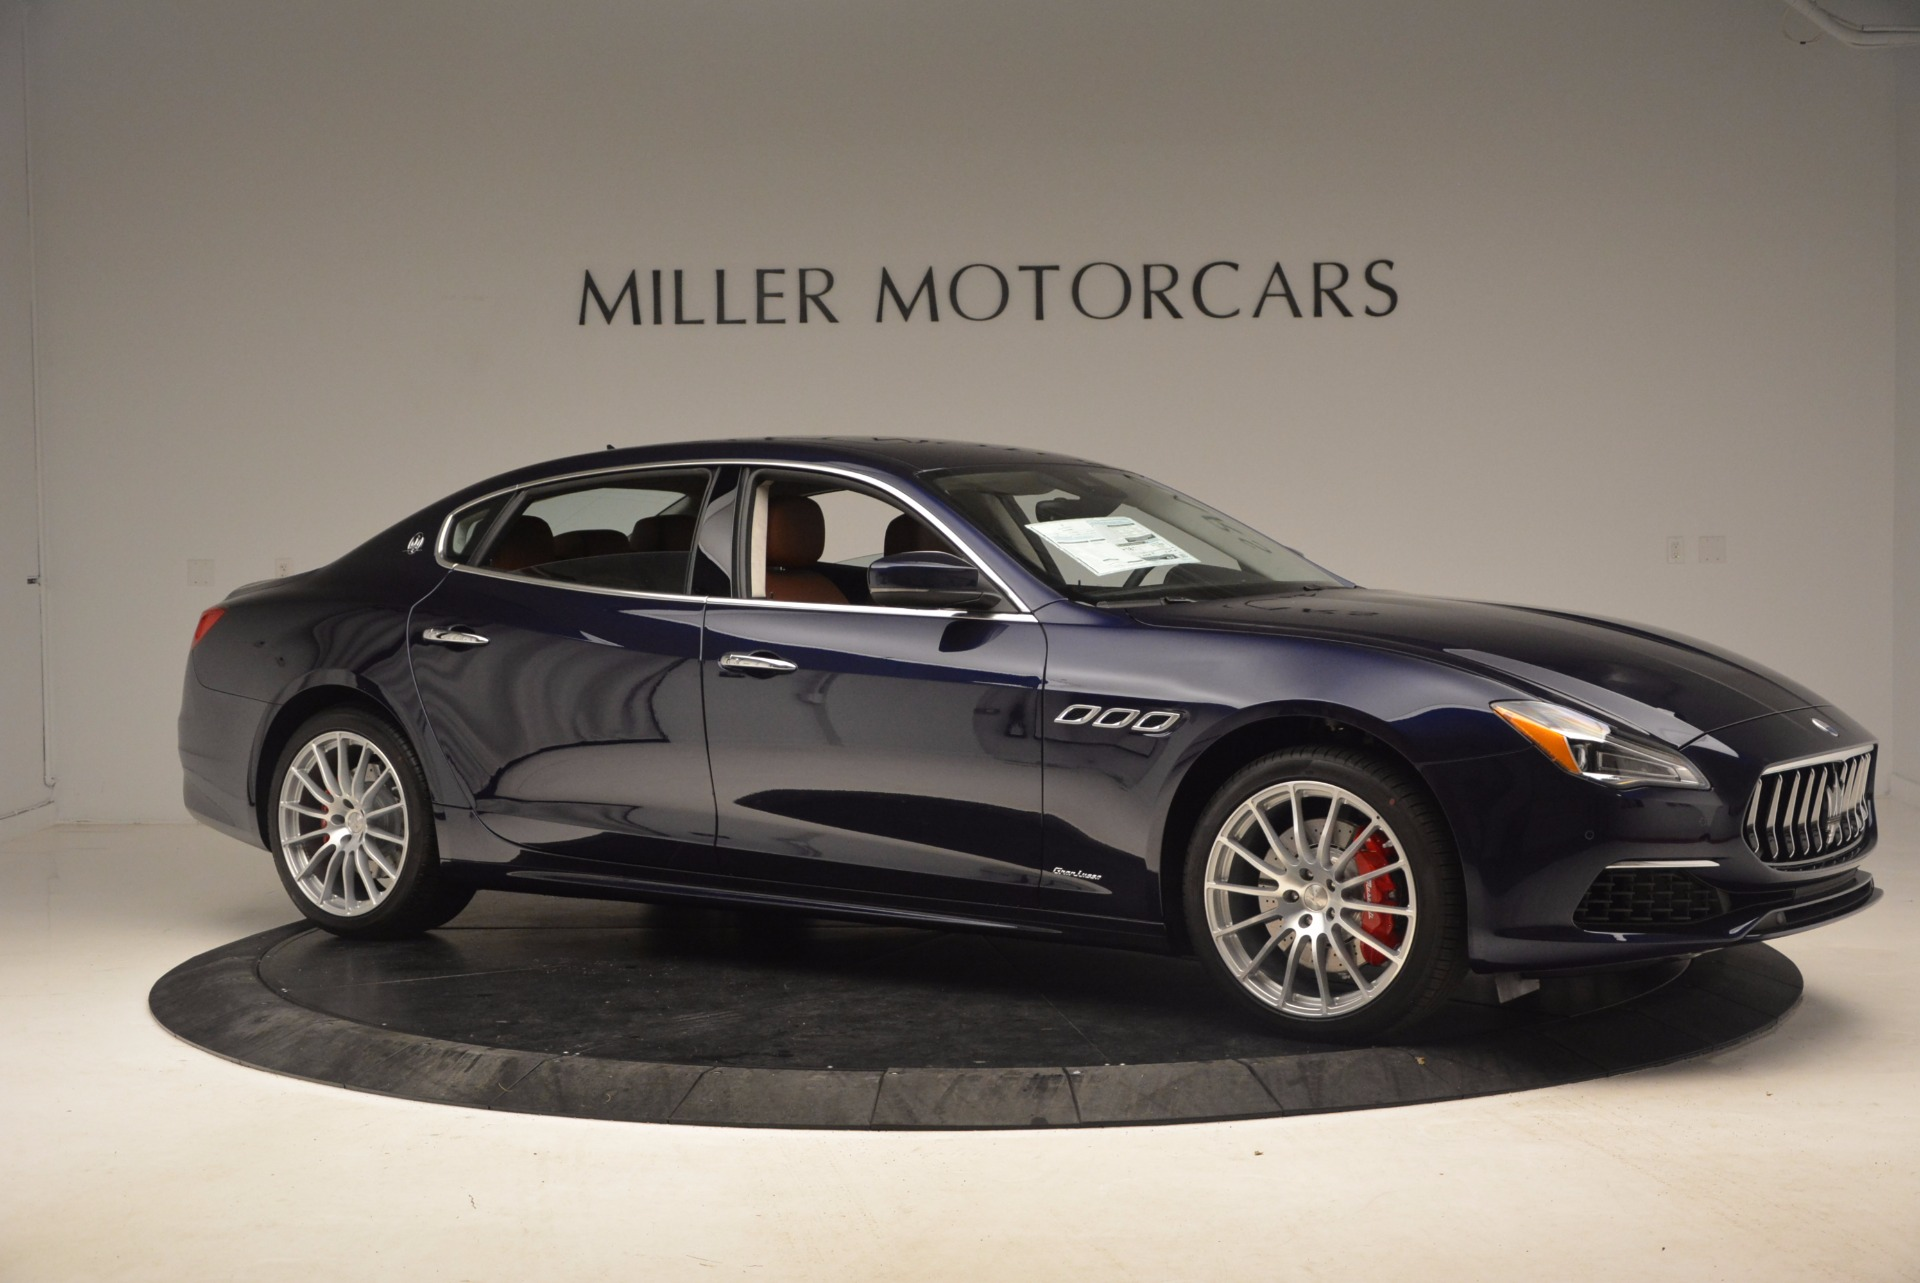 Used 2018 Maserati Quattroporte S Q4 GranLusso For Sale In Greenwich, CT 1572_p10